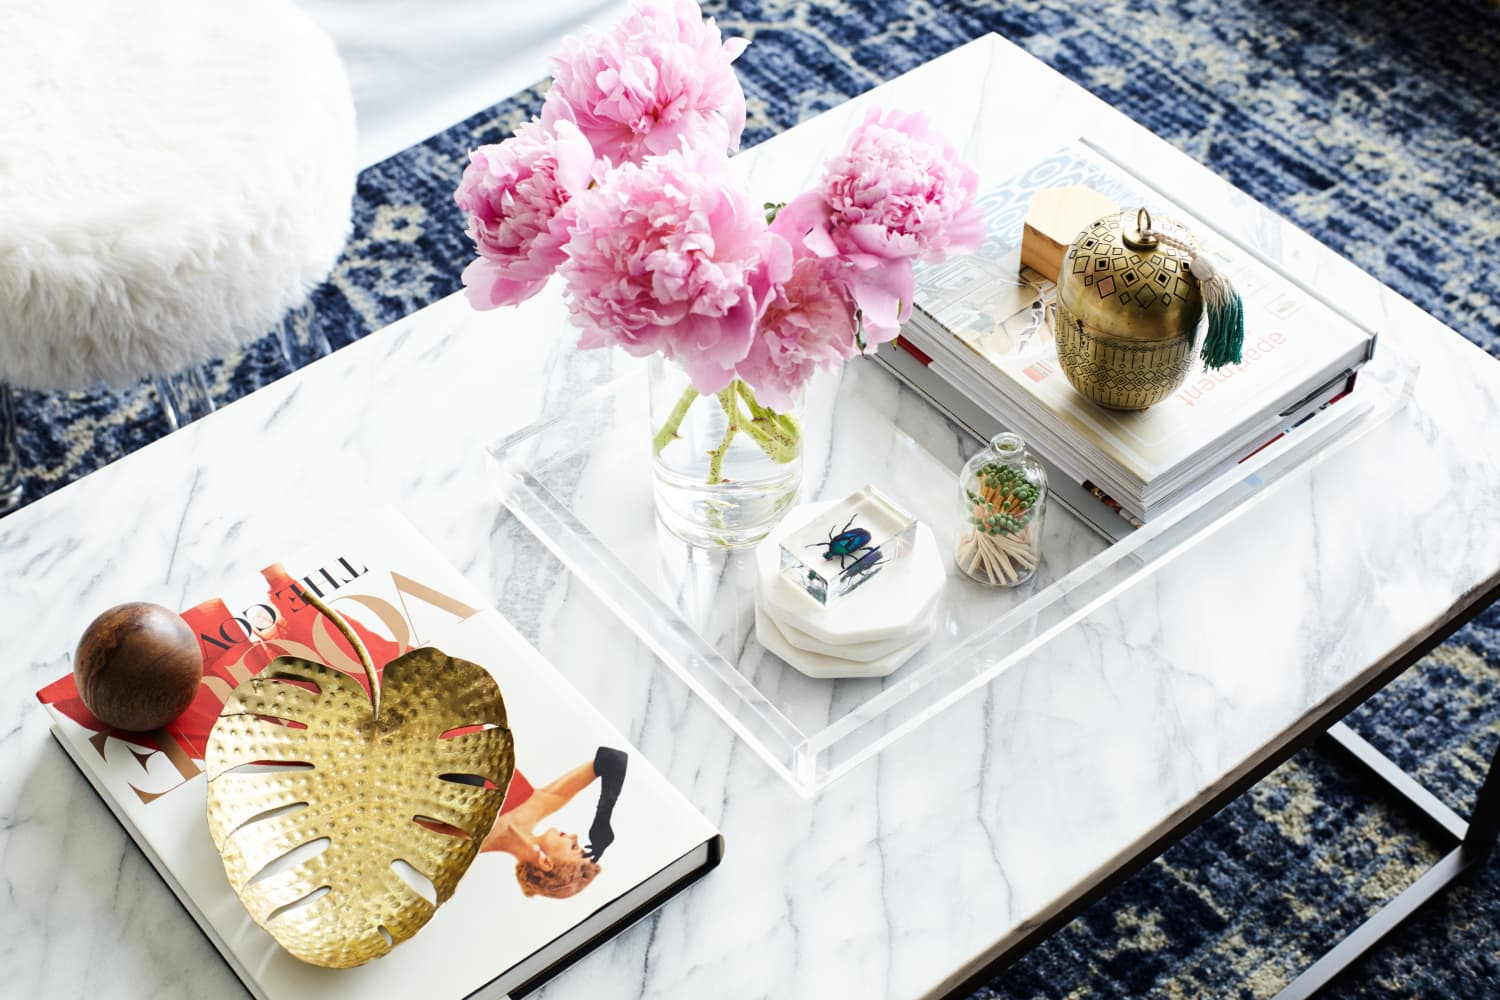 Make It Beautiful: How To Style the Perfect Coffee Table